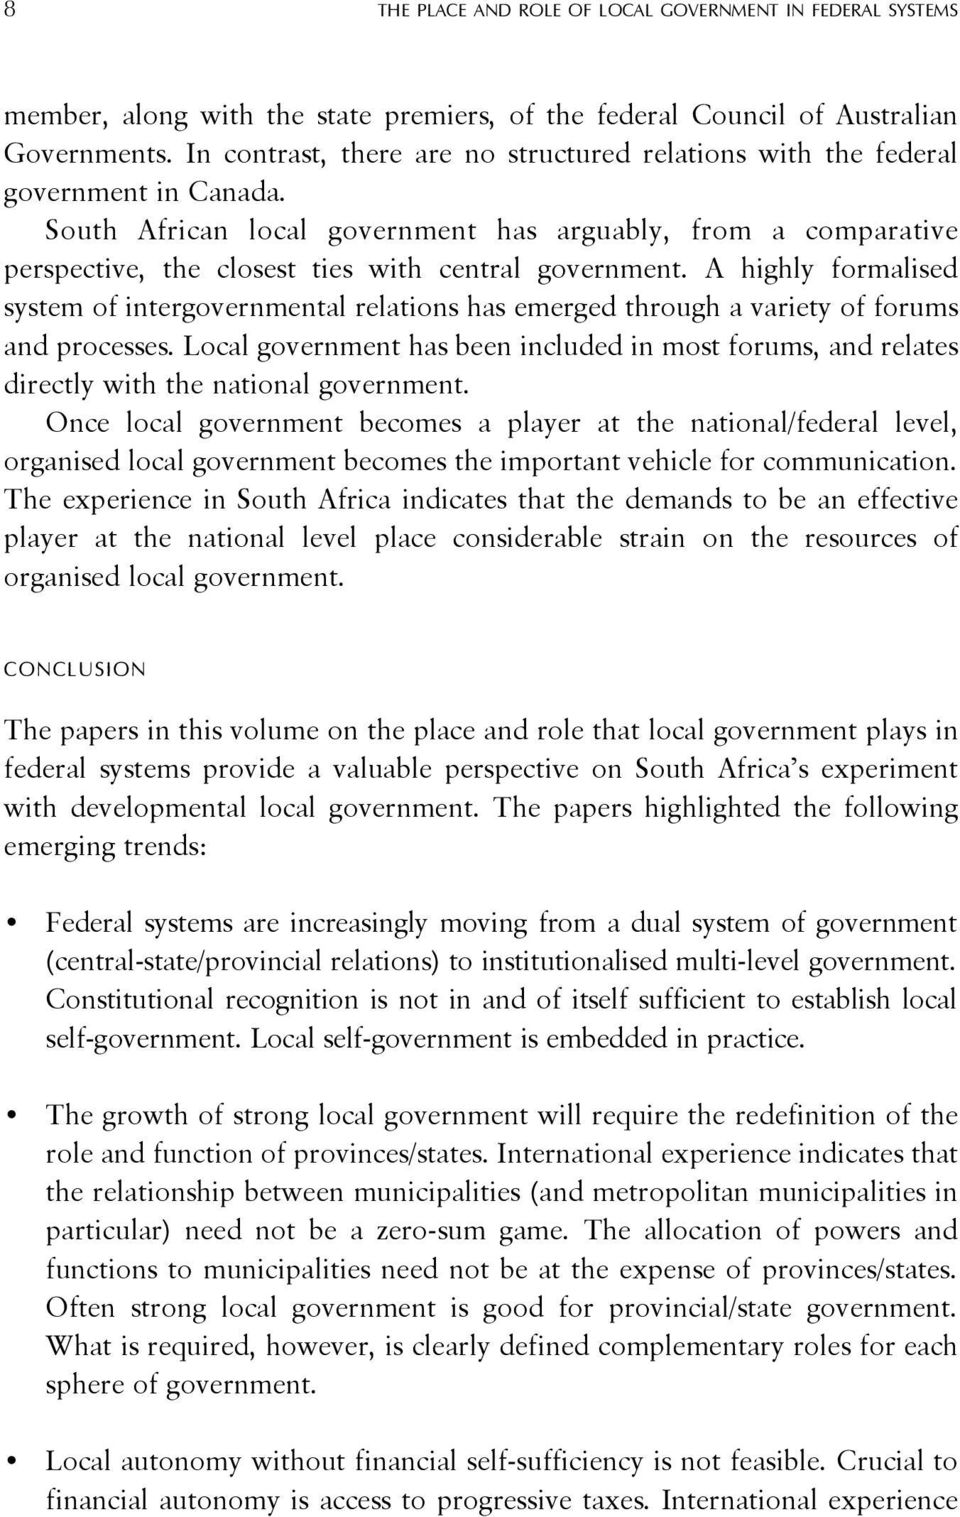 South African local government has arguably, from a comparative perspective, the closest ties with central government.